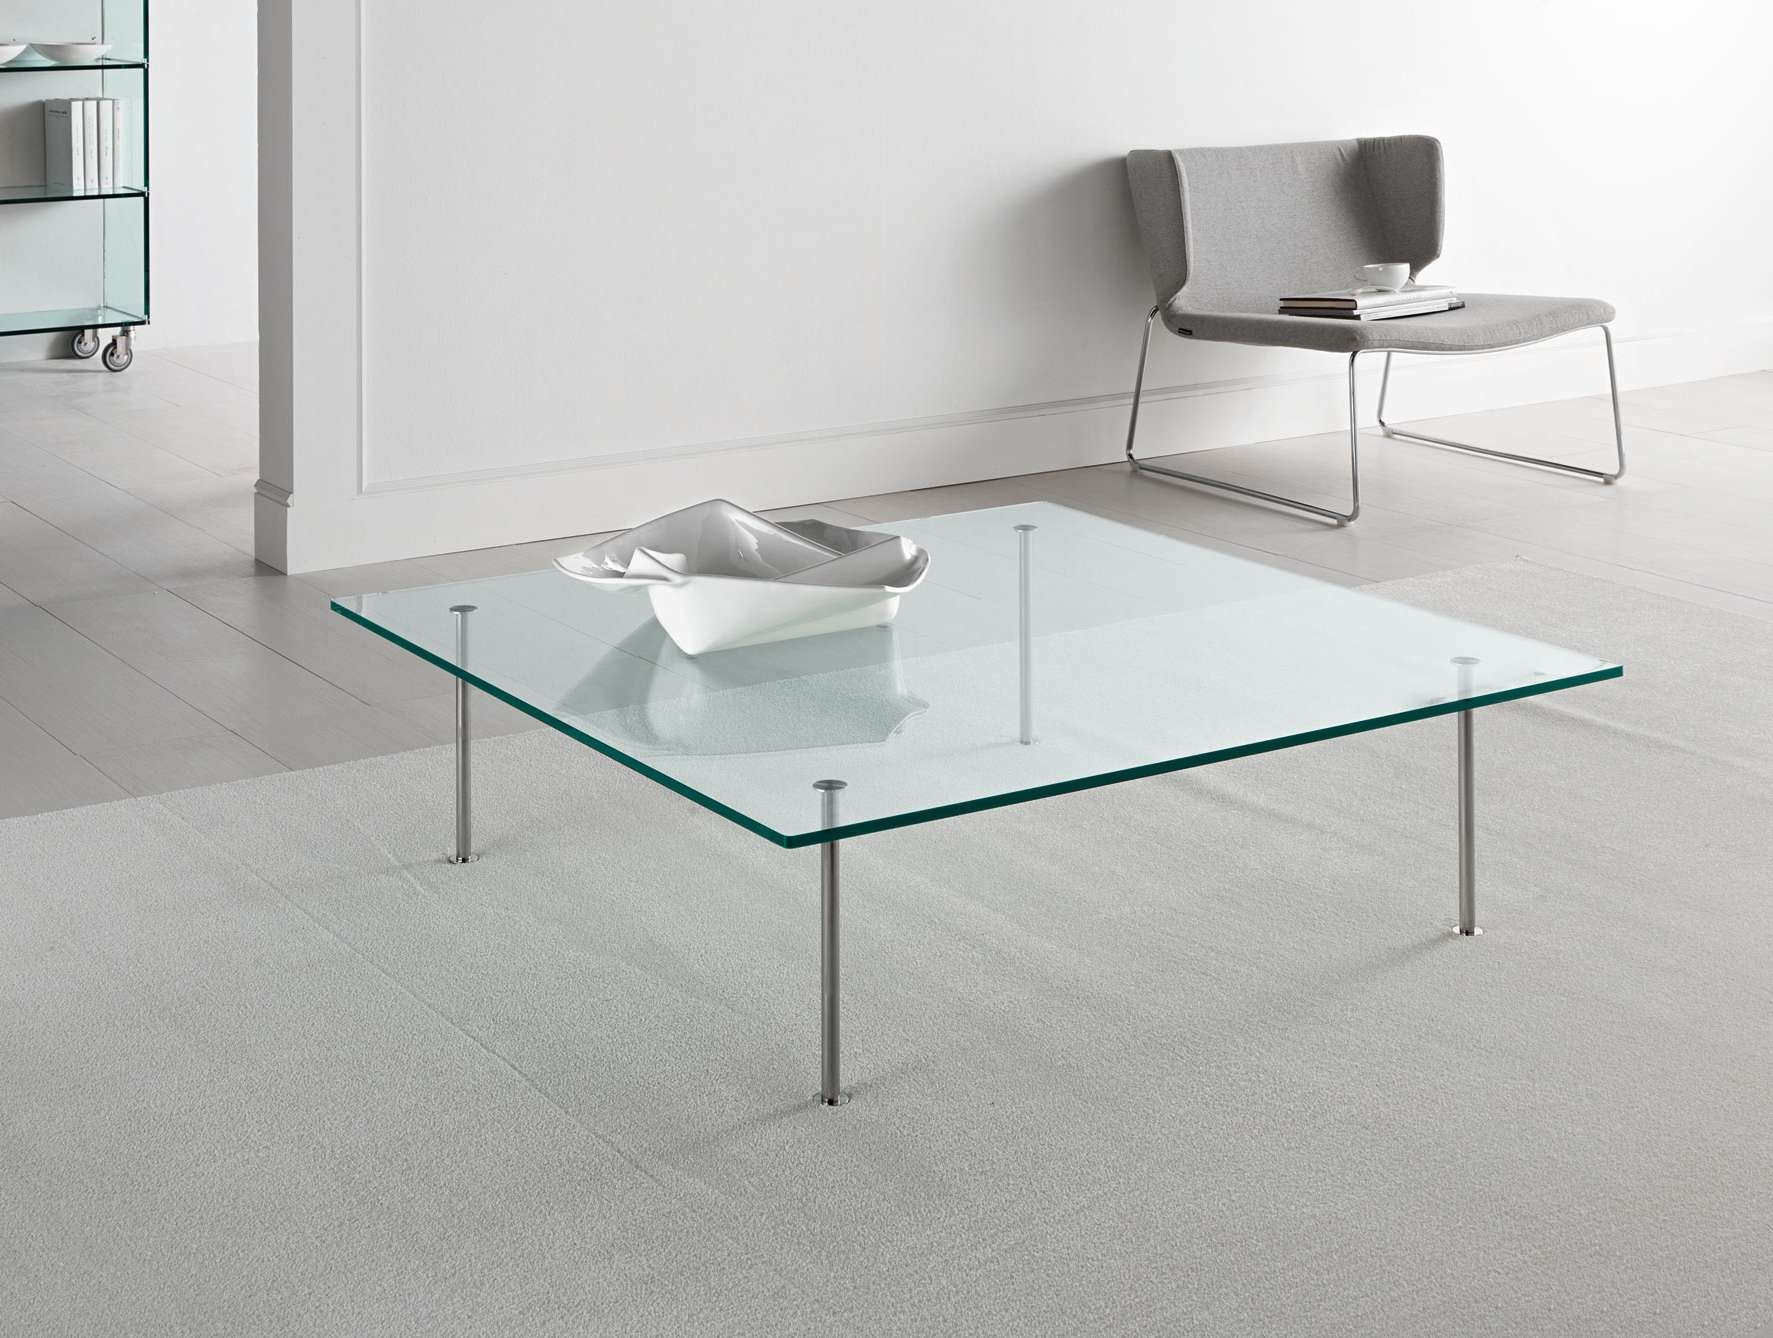 Newest Square Glass Coffee Tables Regarding Nella Vetrina Tonelli Twig Modular Italian Square Coffee Table (View 16 of 20)